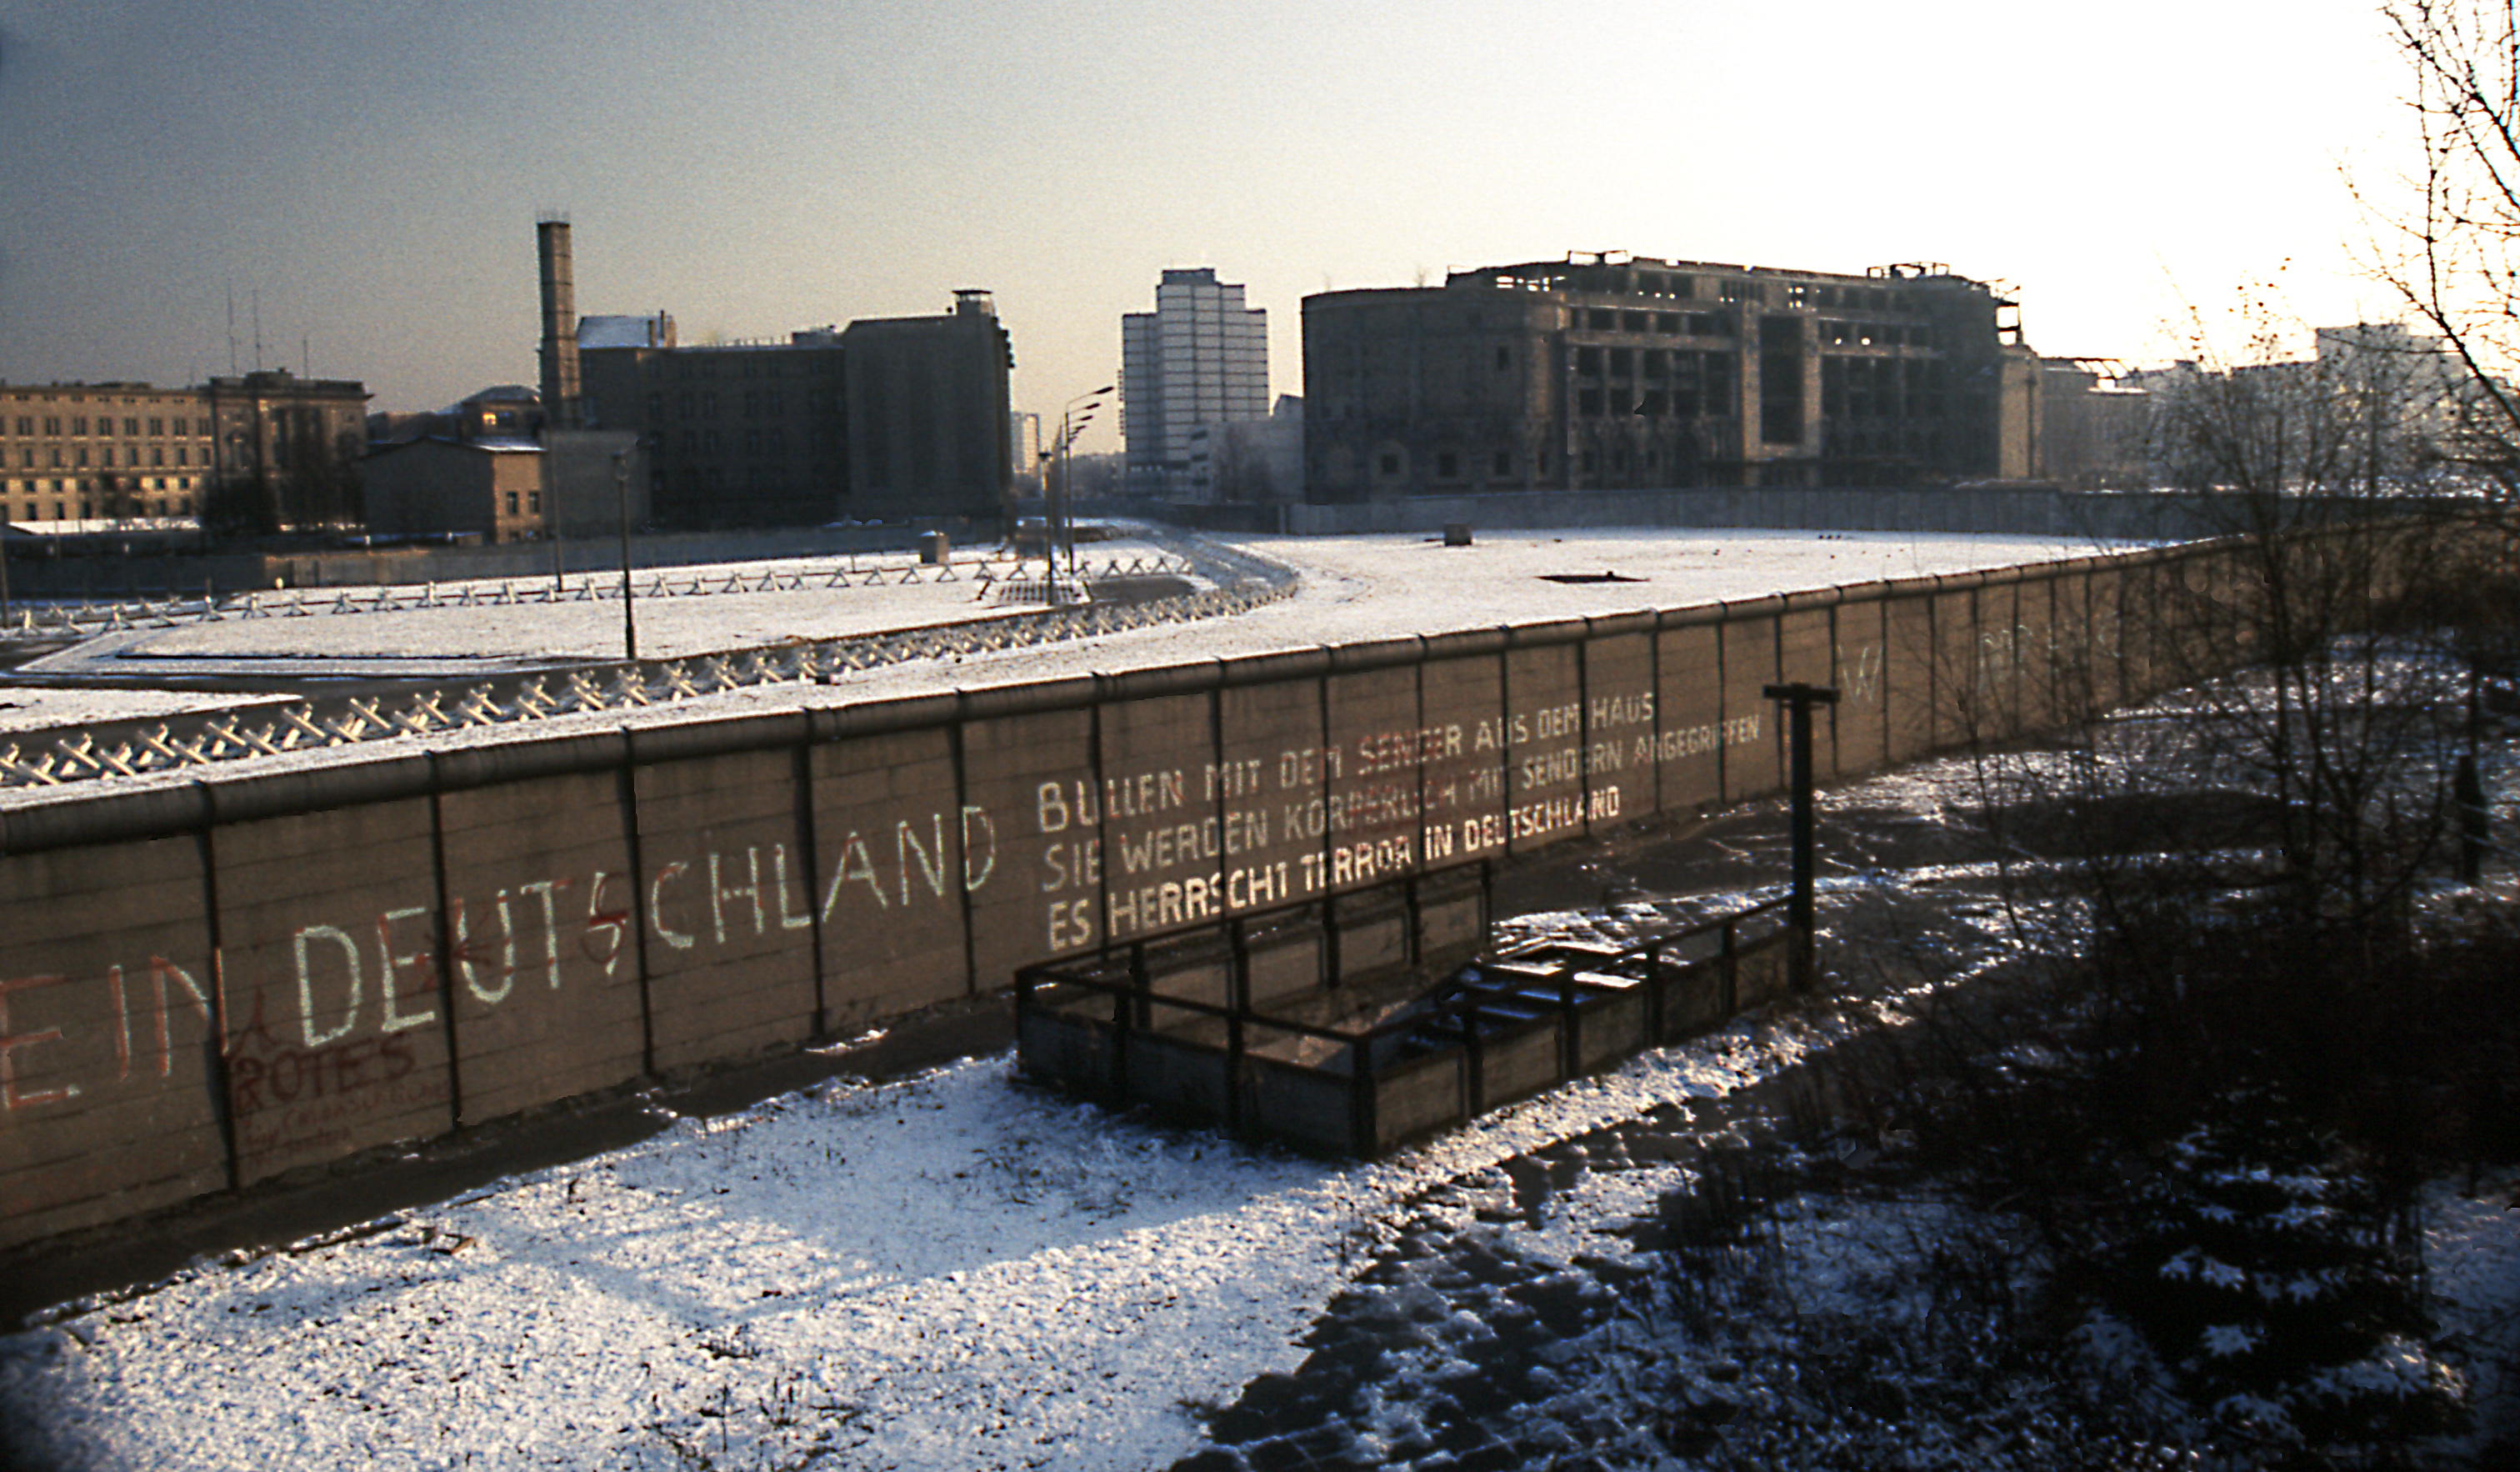 ©Edward Valachovic, Berlin Wall Postdamer Platz November 1975 looking East, CC BY 2.0